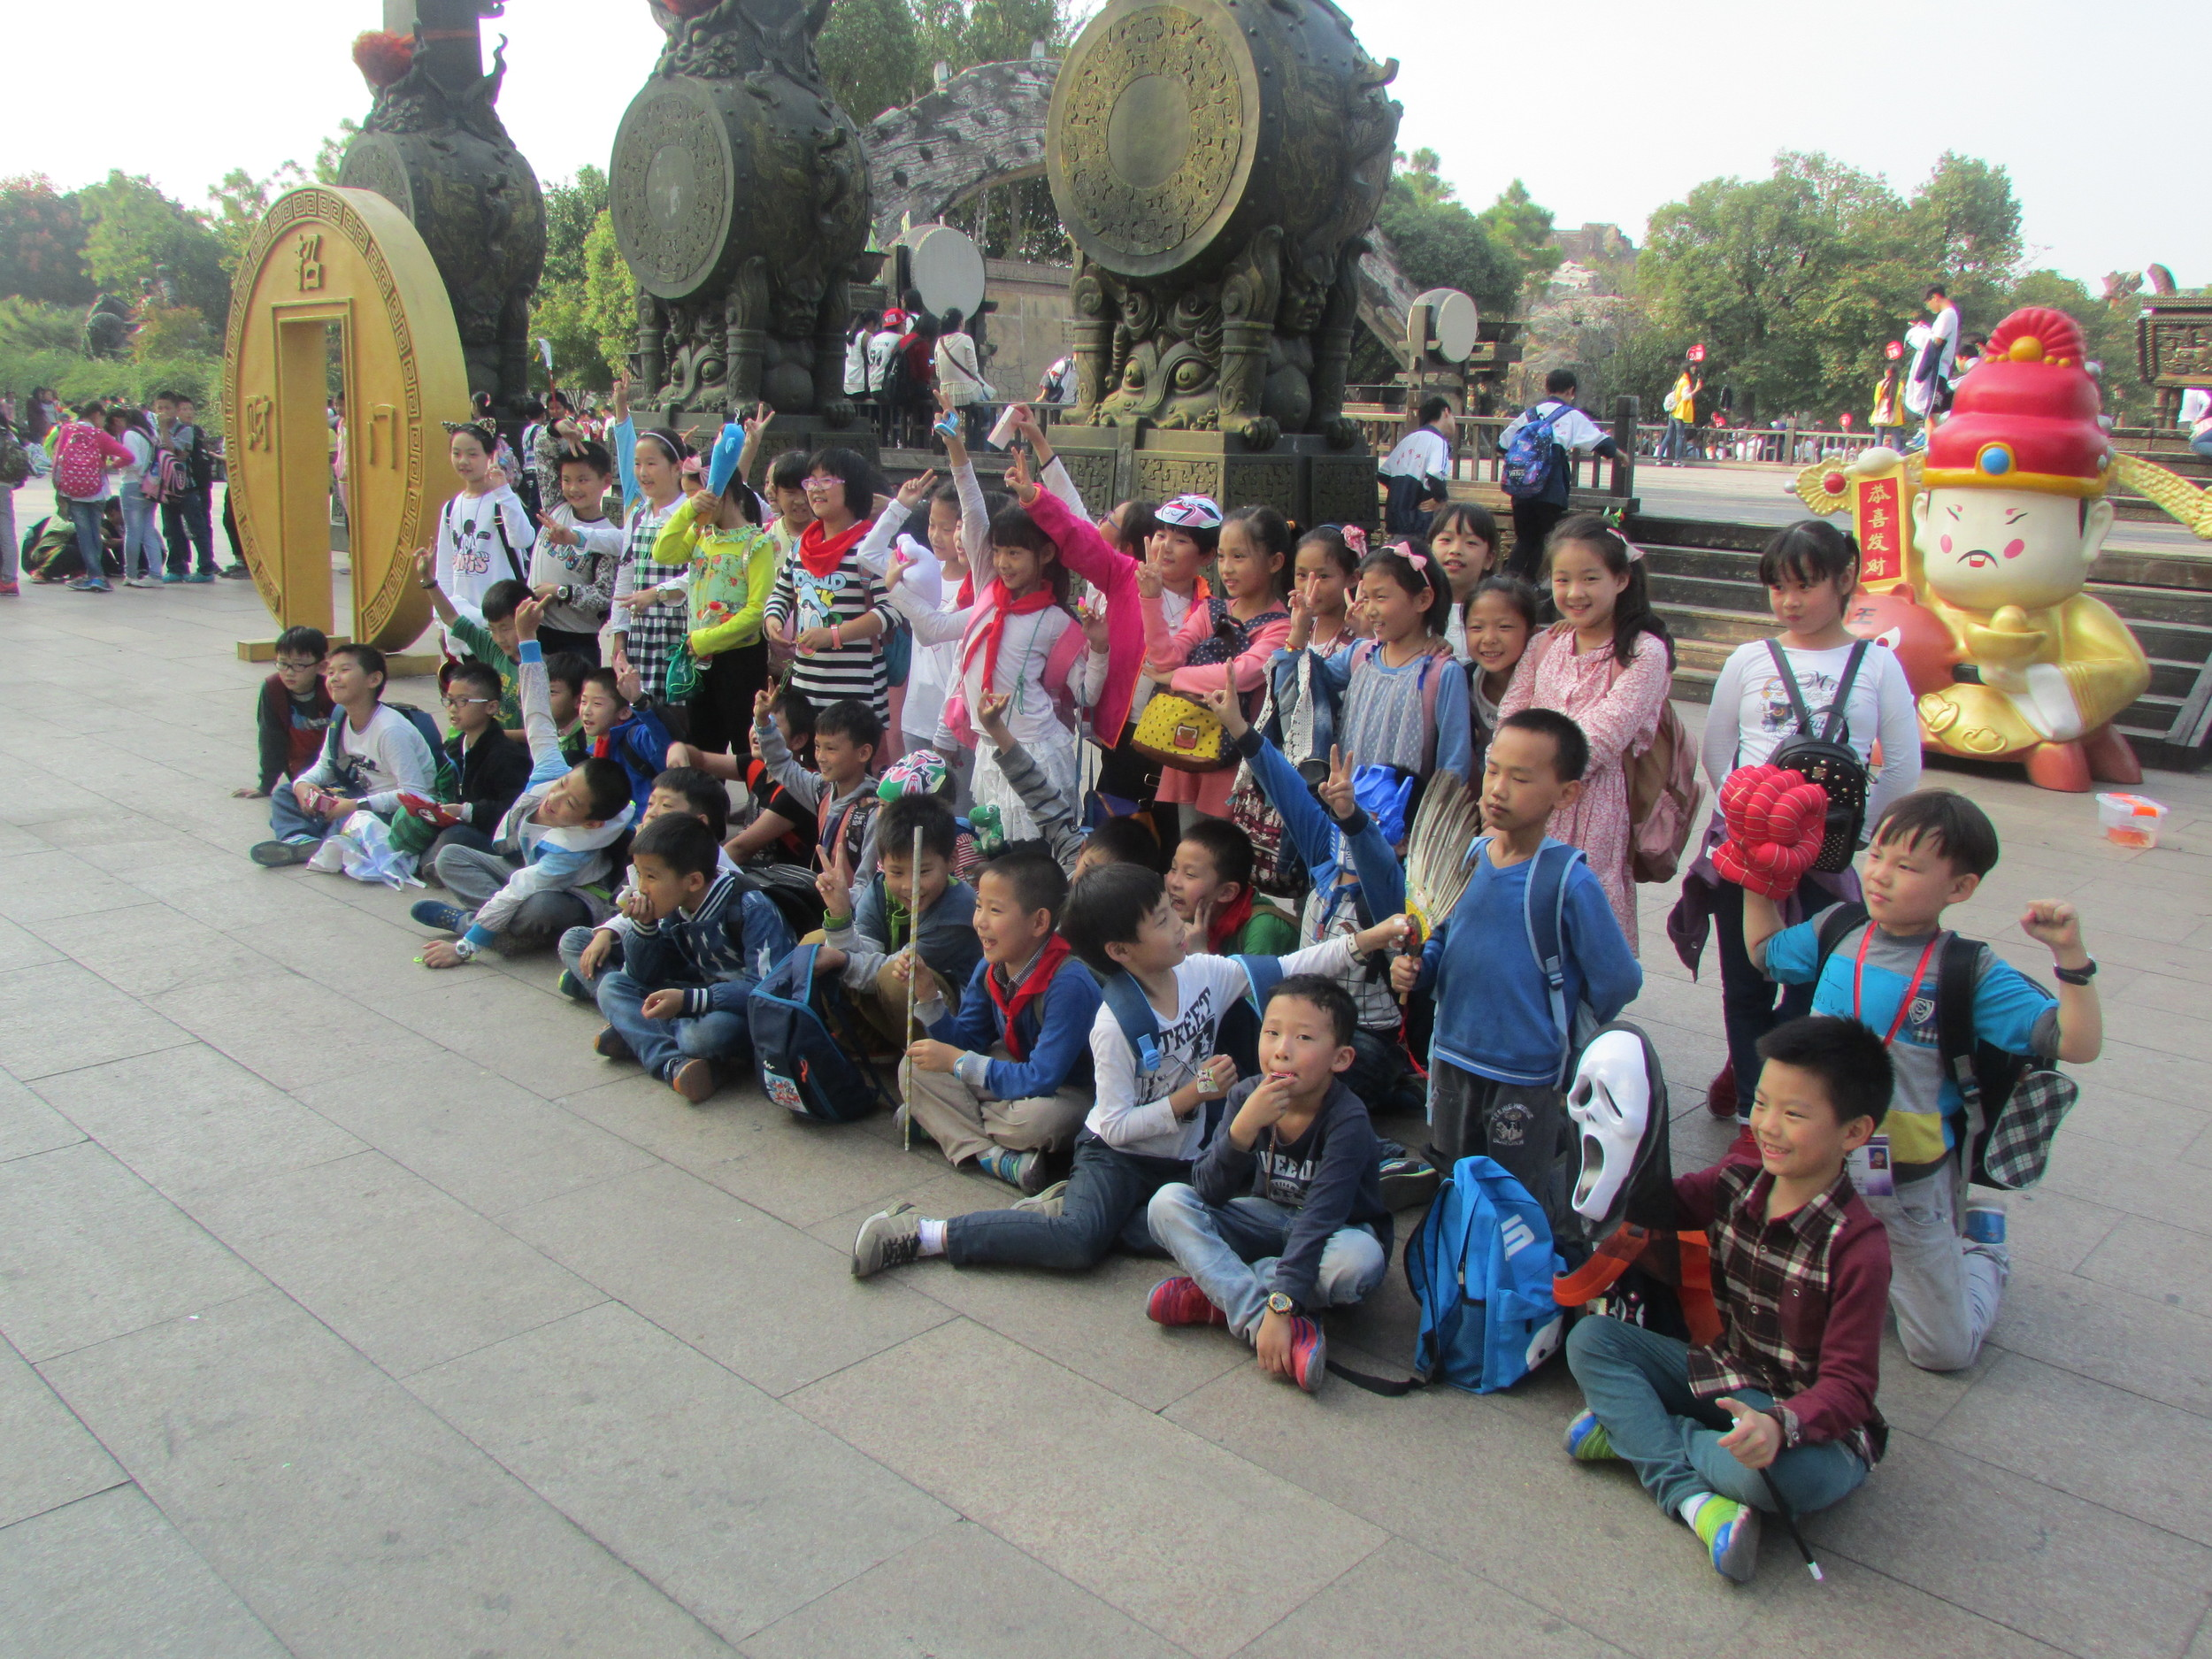 After a long day in the Yancheng theme park, my class 2 students ham it up for a group picture.